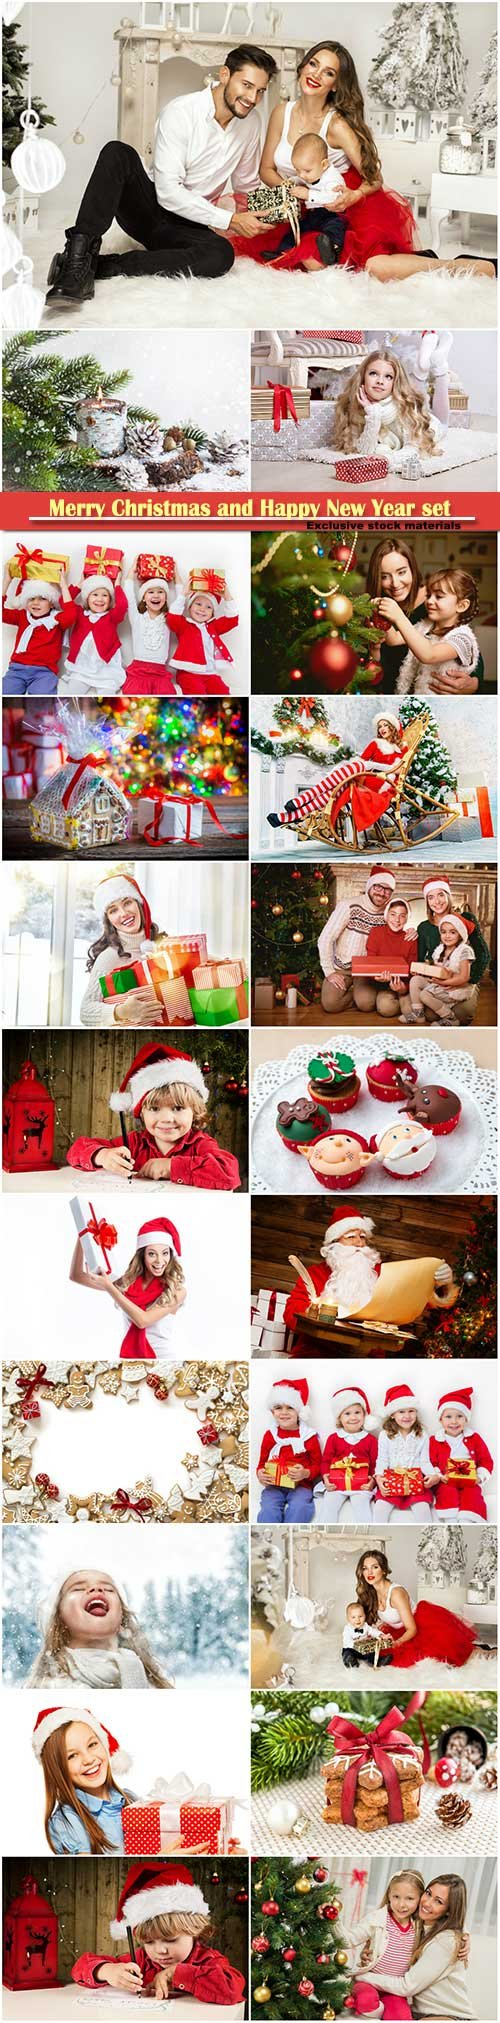 Merry Christmas and Happy New Year stock set # 5